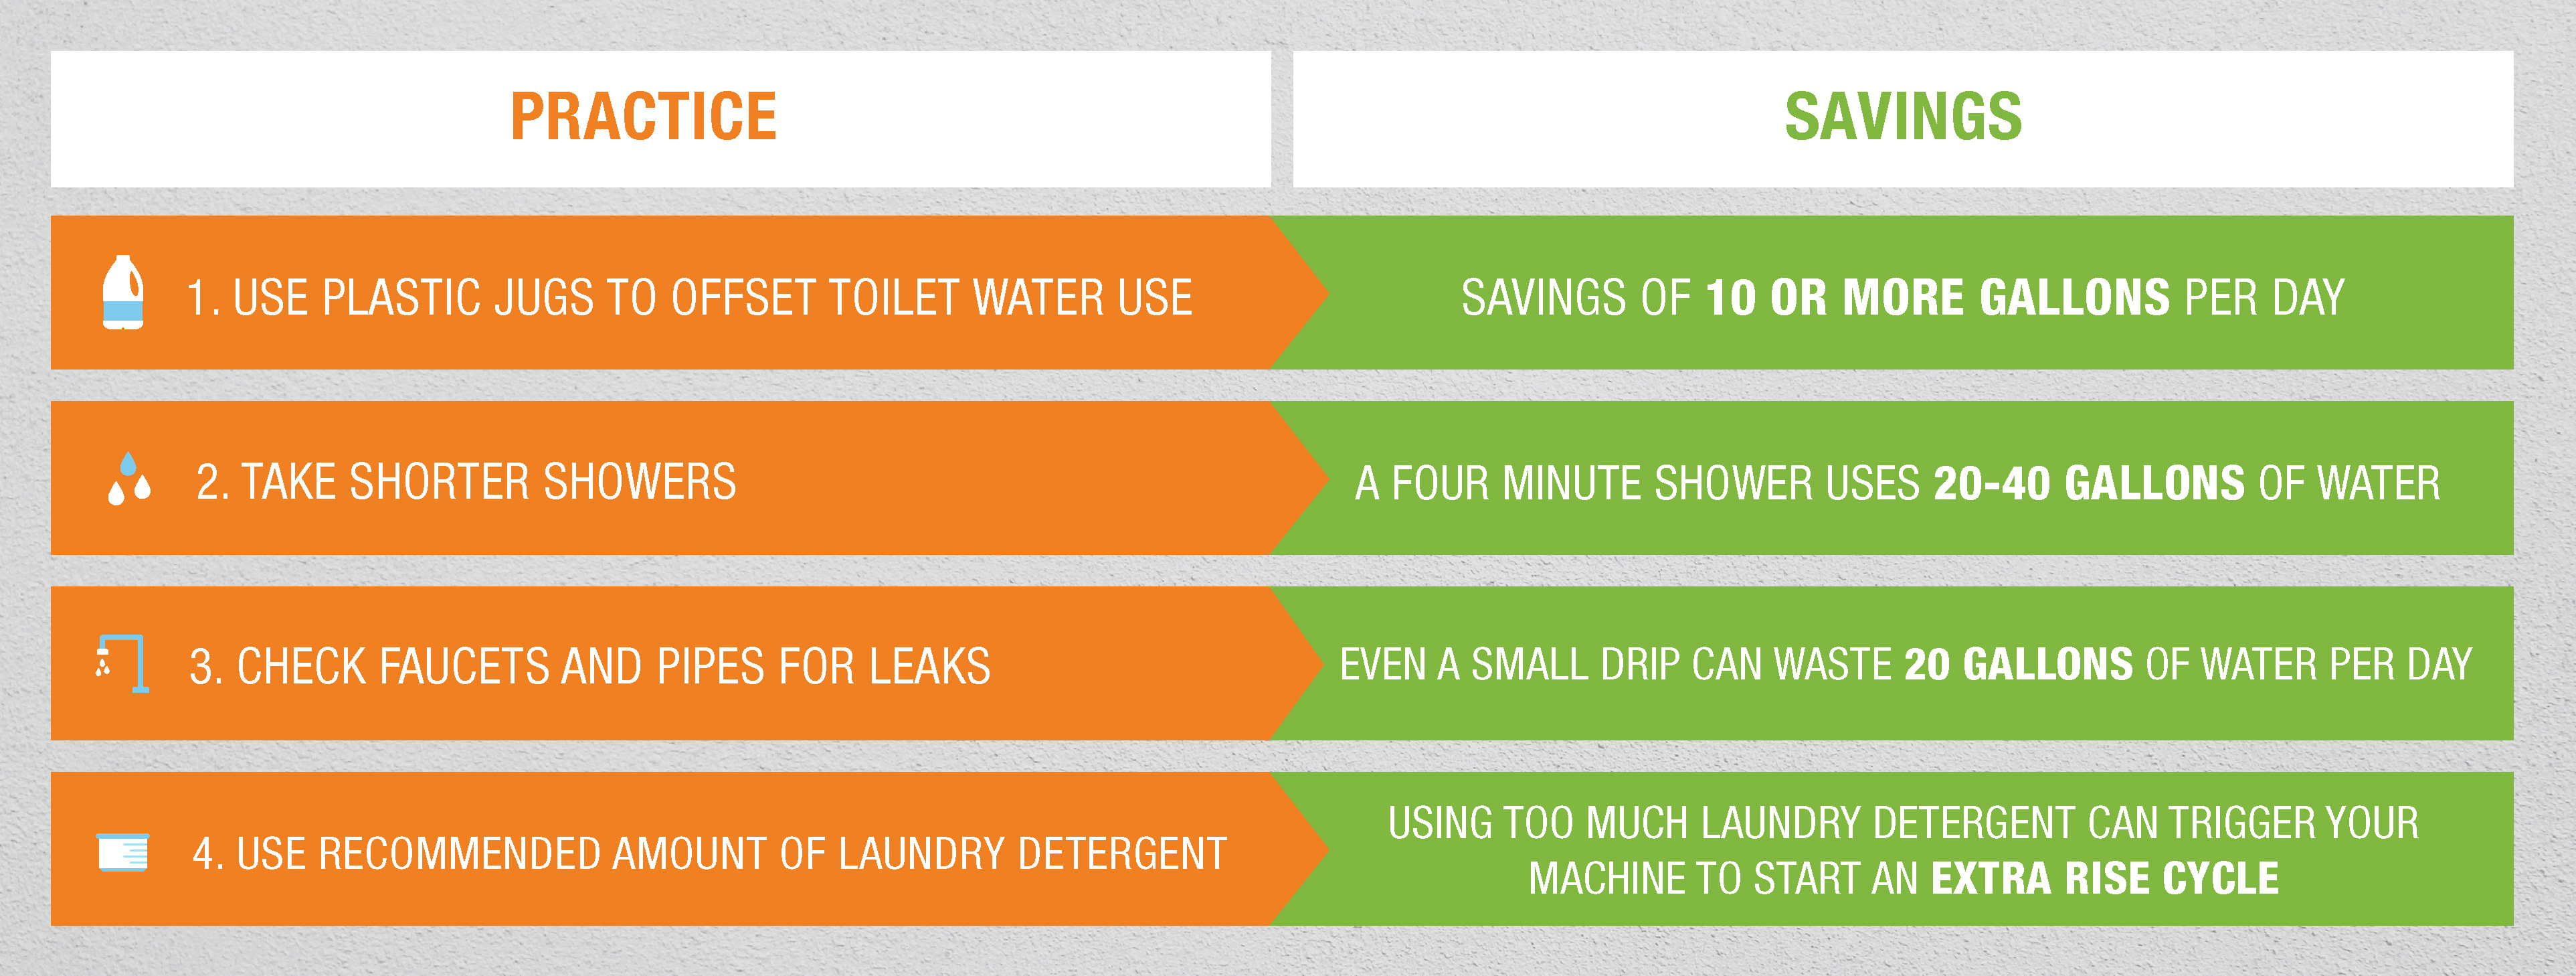 Infographic detailing water saving practices